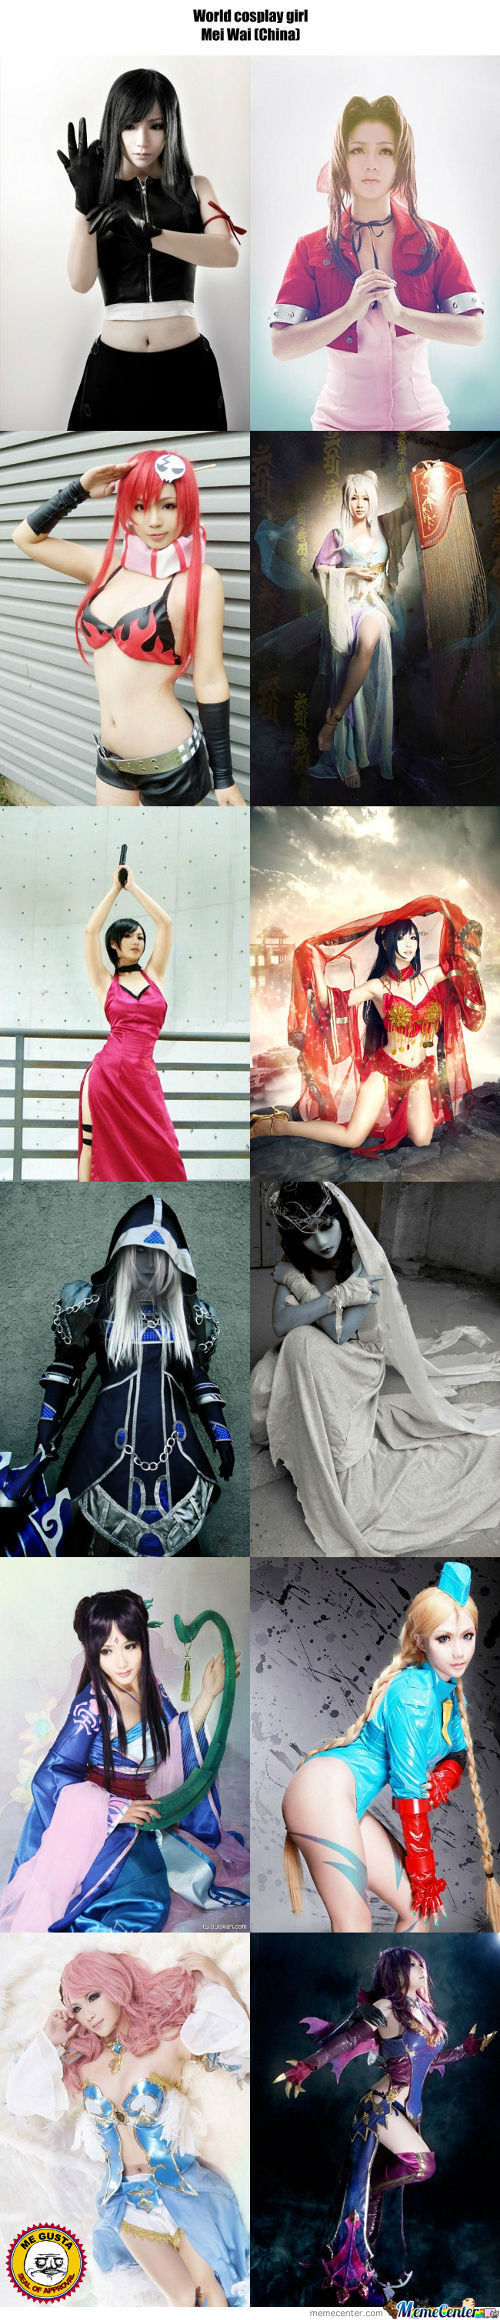 Cosplay Girl 47 : Mei Wai (China)